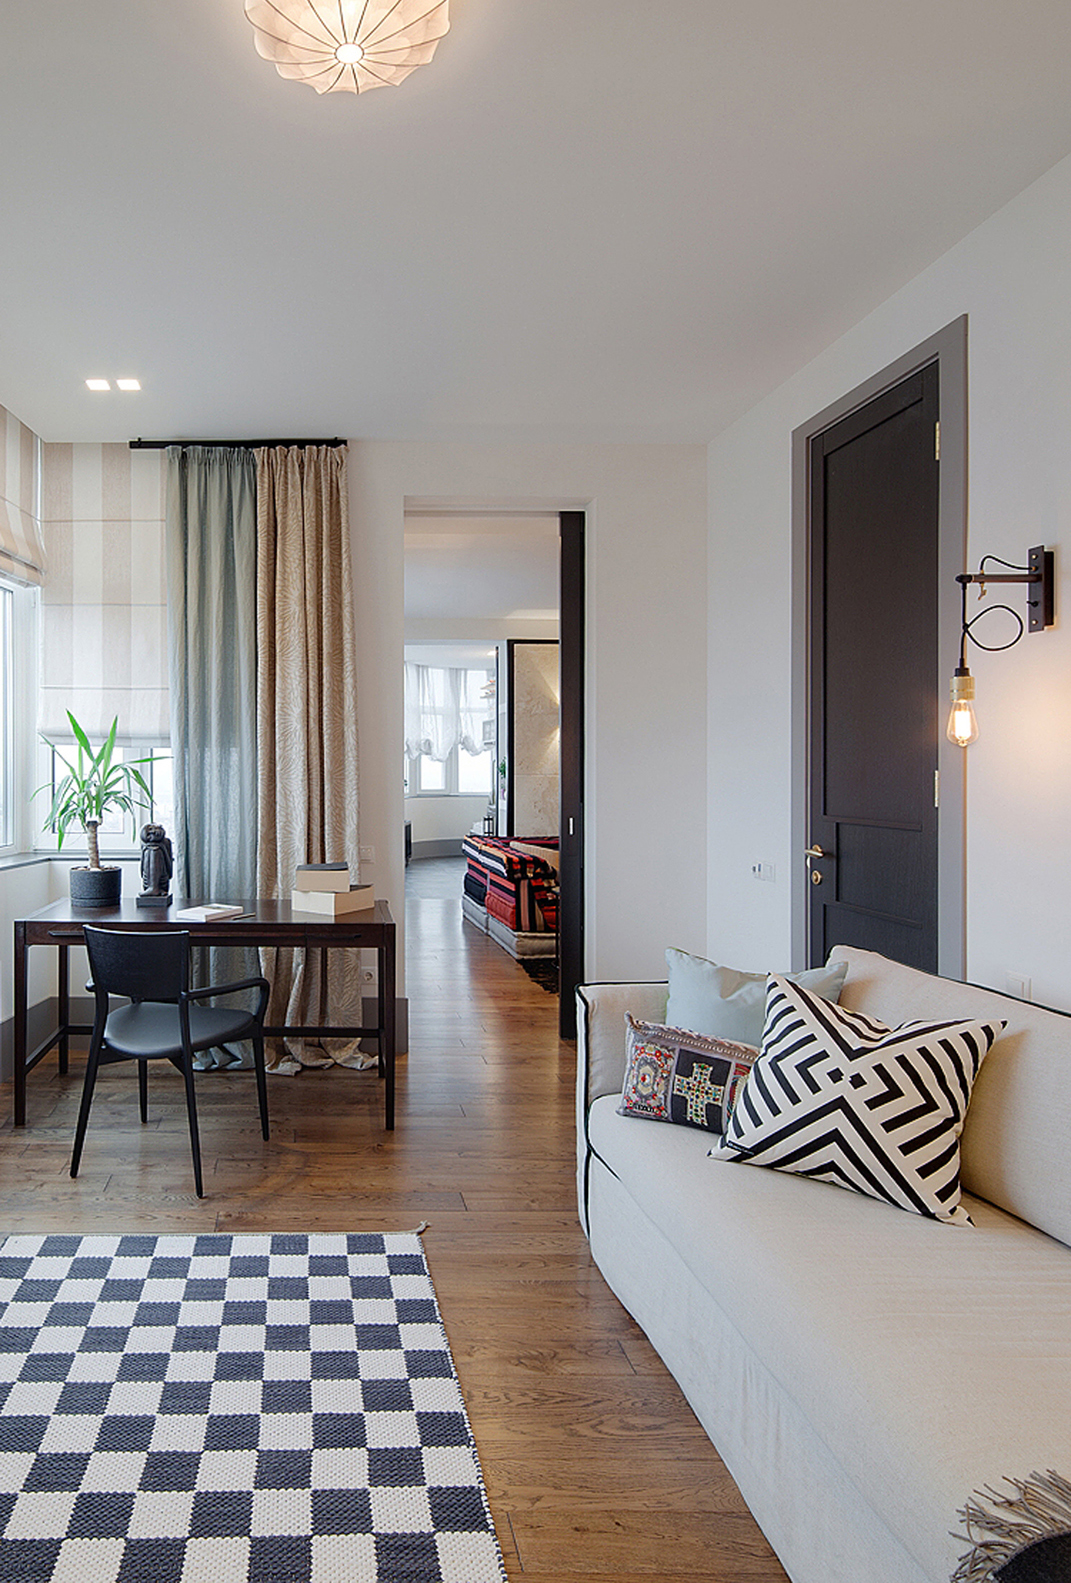 Contemporary chic decor - Recommended